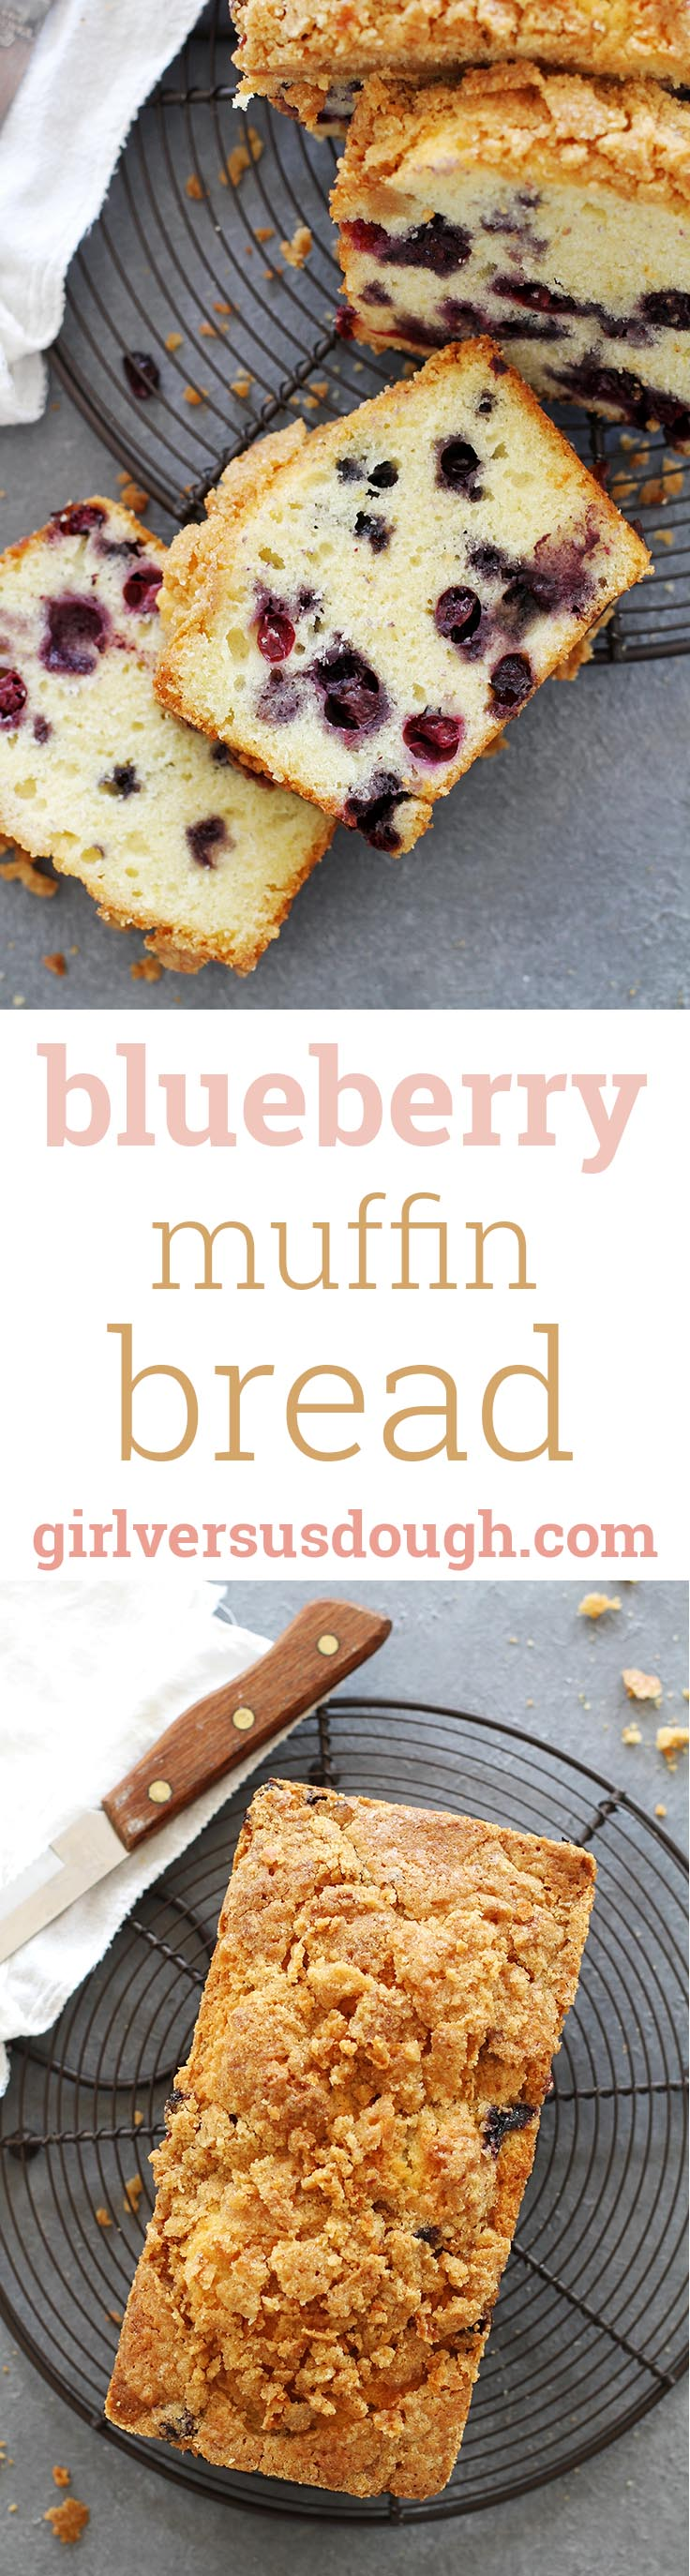 Blueberry Lemon Muffin Bread -- soft, moist and flavorful quick bread with a crunch topping. Perfect for breakfast or dessert! girlversusdough.com @girlversusdough